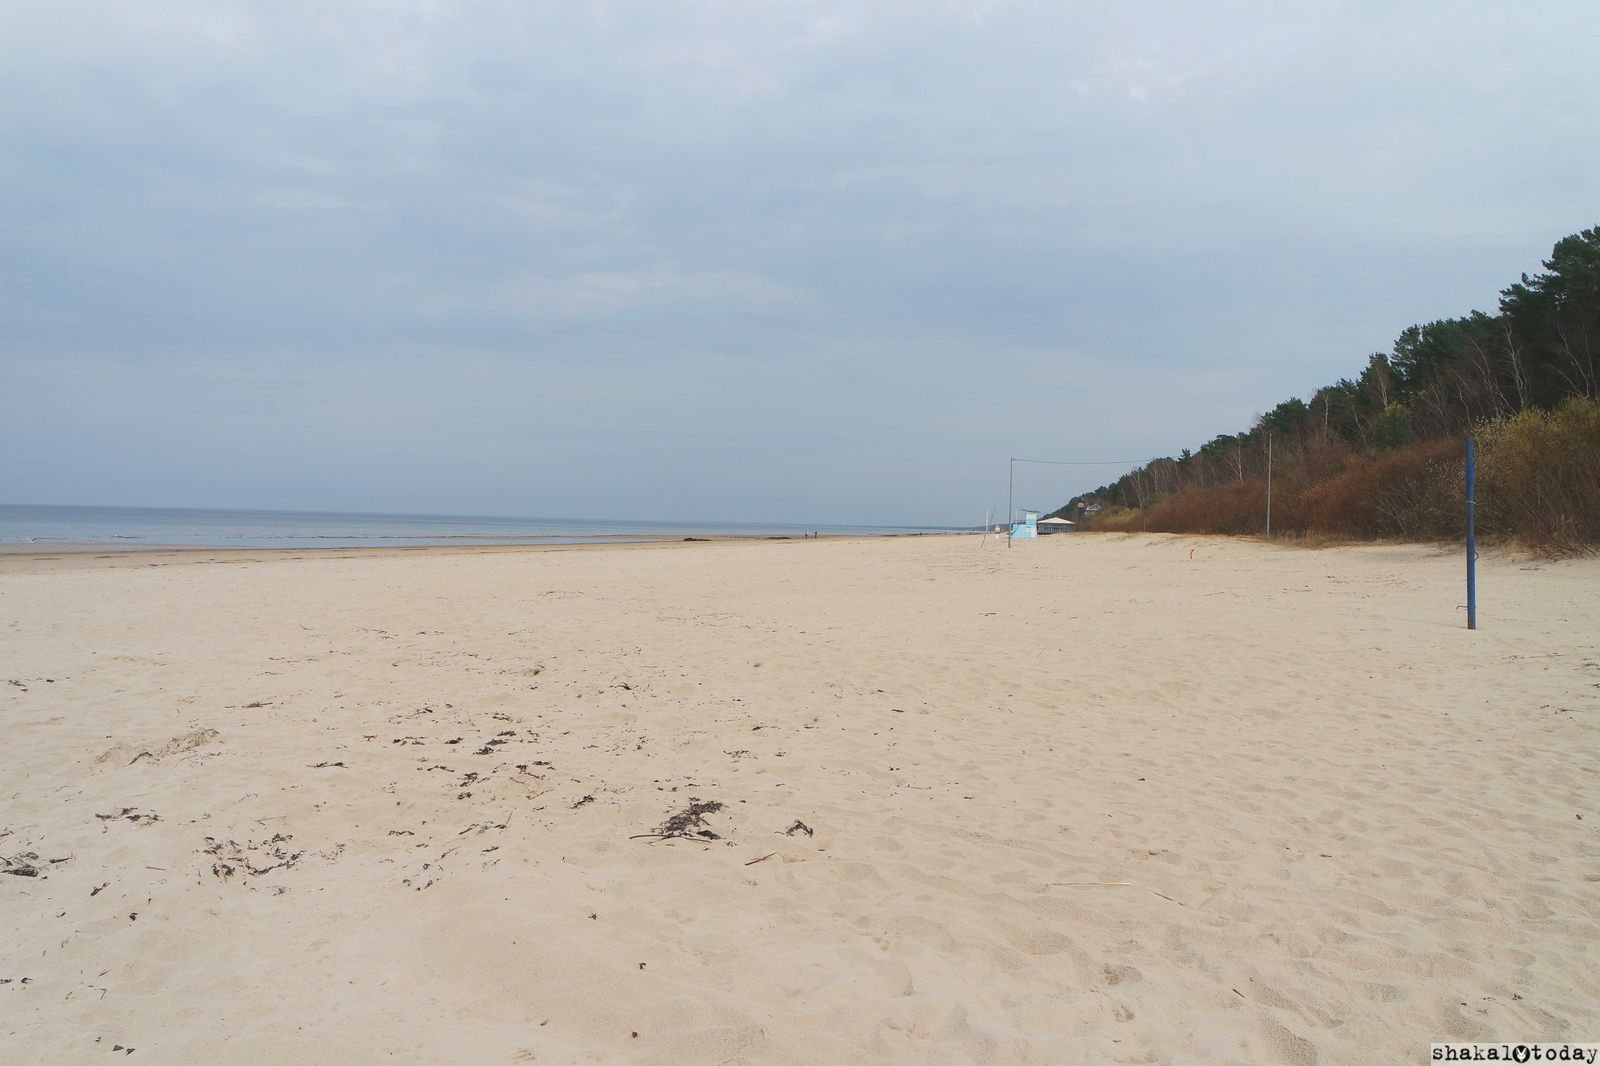 jurmala-shakal-today-0035.jpg